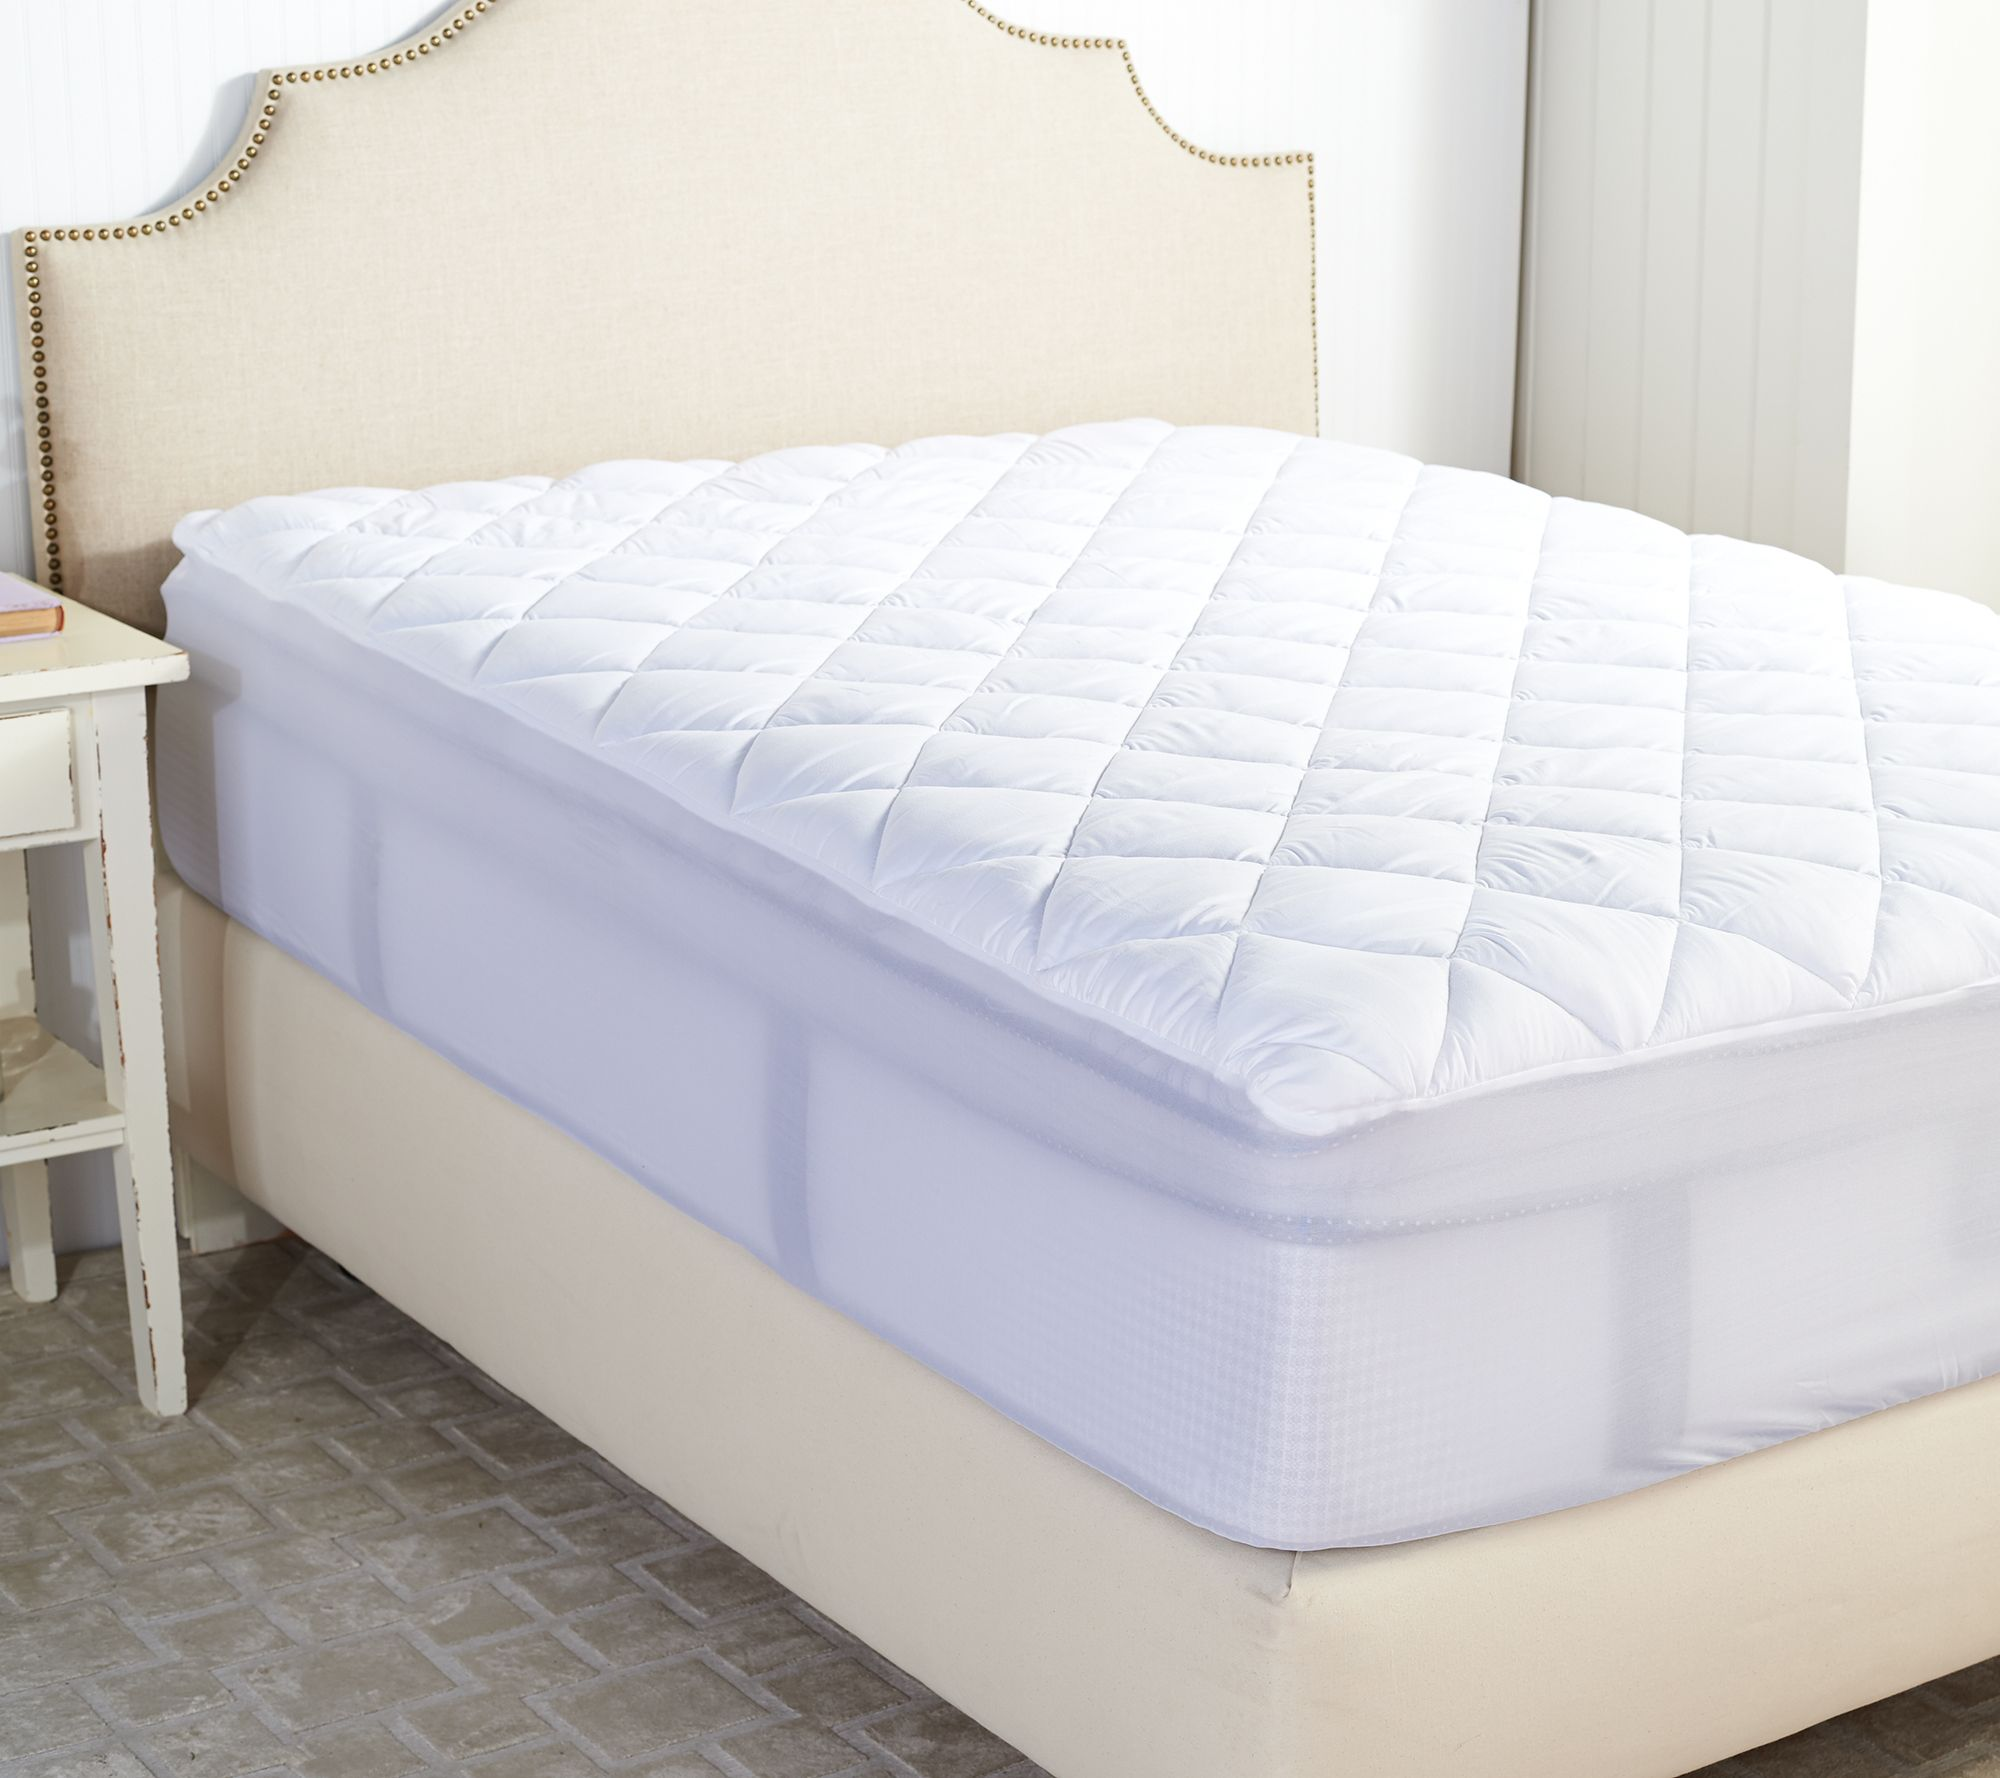 Serta Perfect Sleeper Twin Mattress Pad with Nanotex